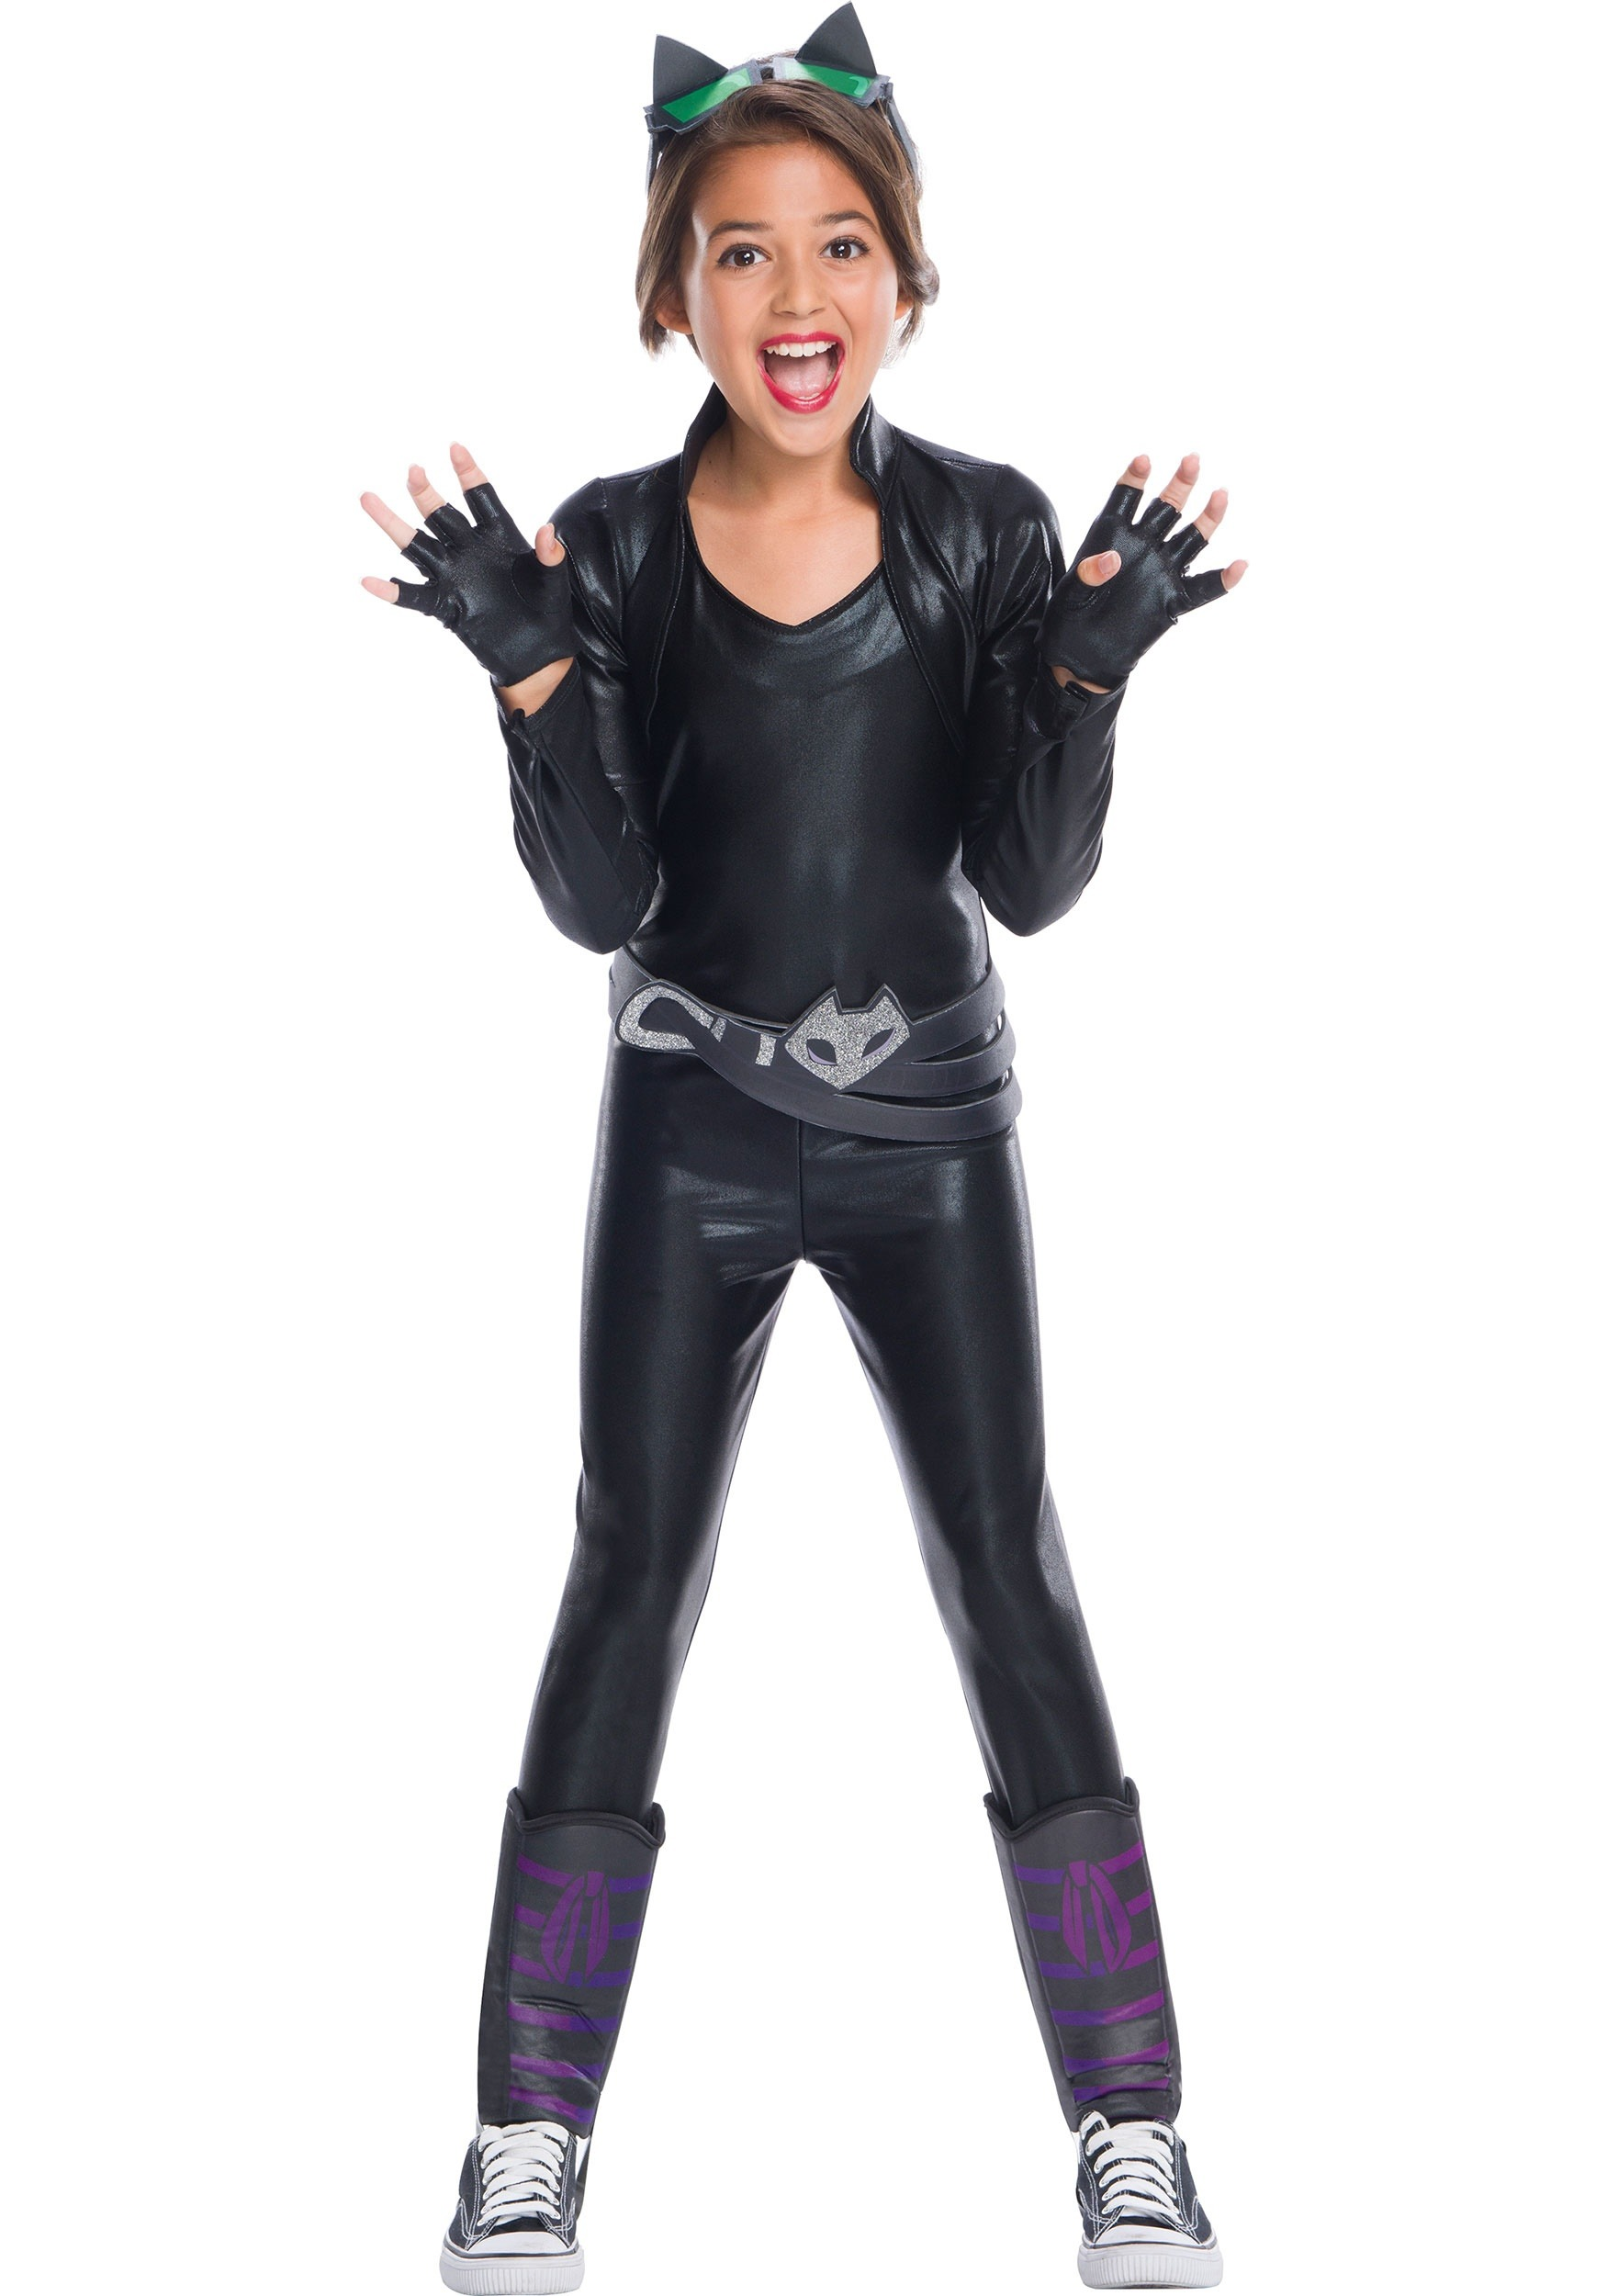 DC Superhero Girls Catwoman Costume  sc 1 st  Halloween Costumes & DC Superhero Girls Catwoman Costume for Girls